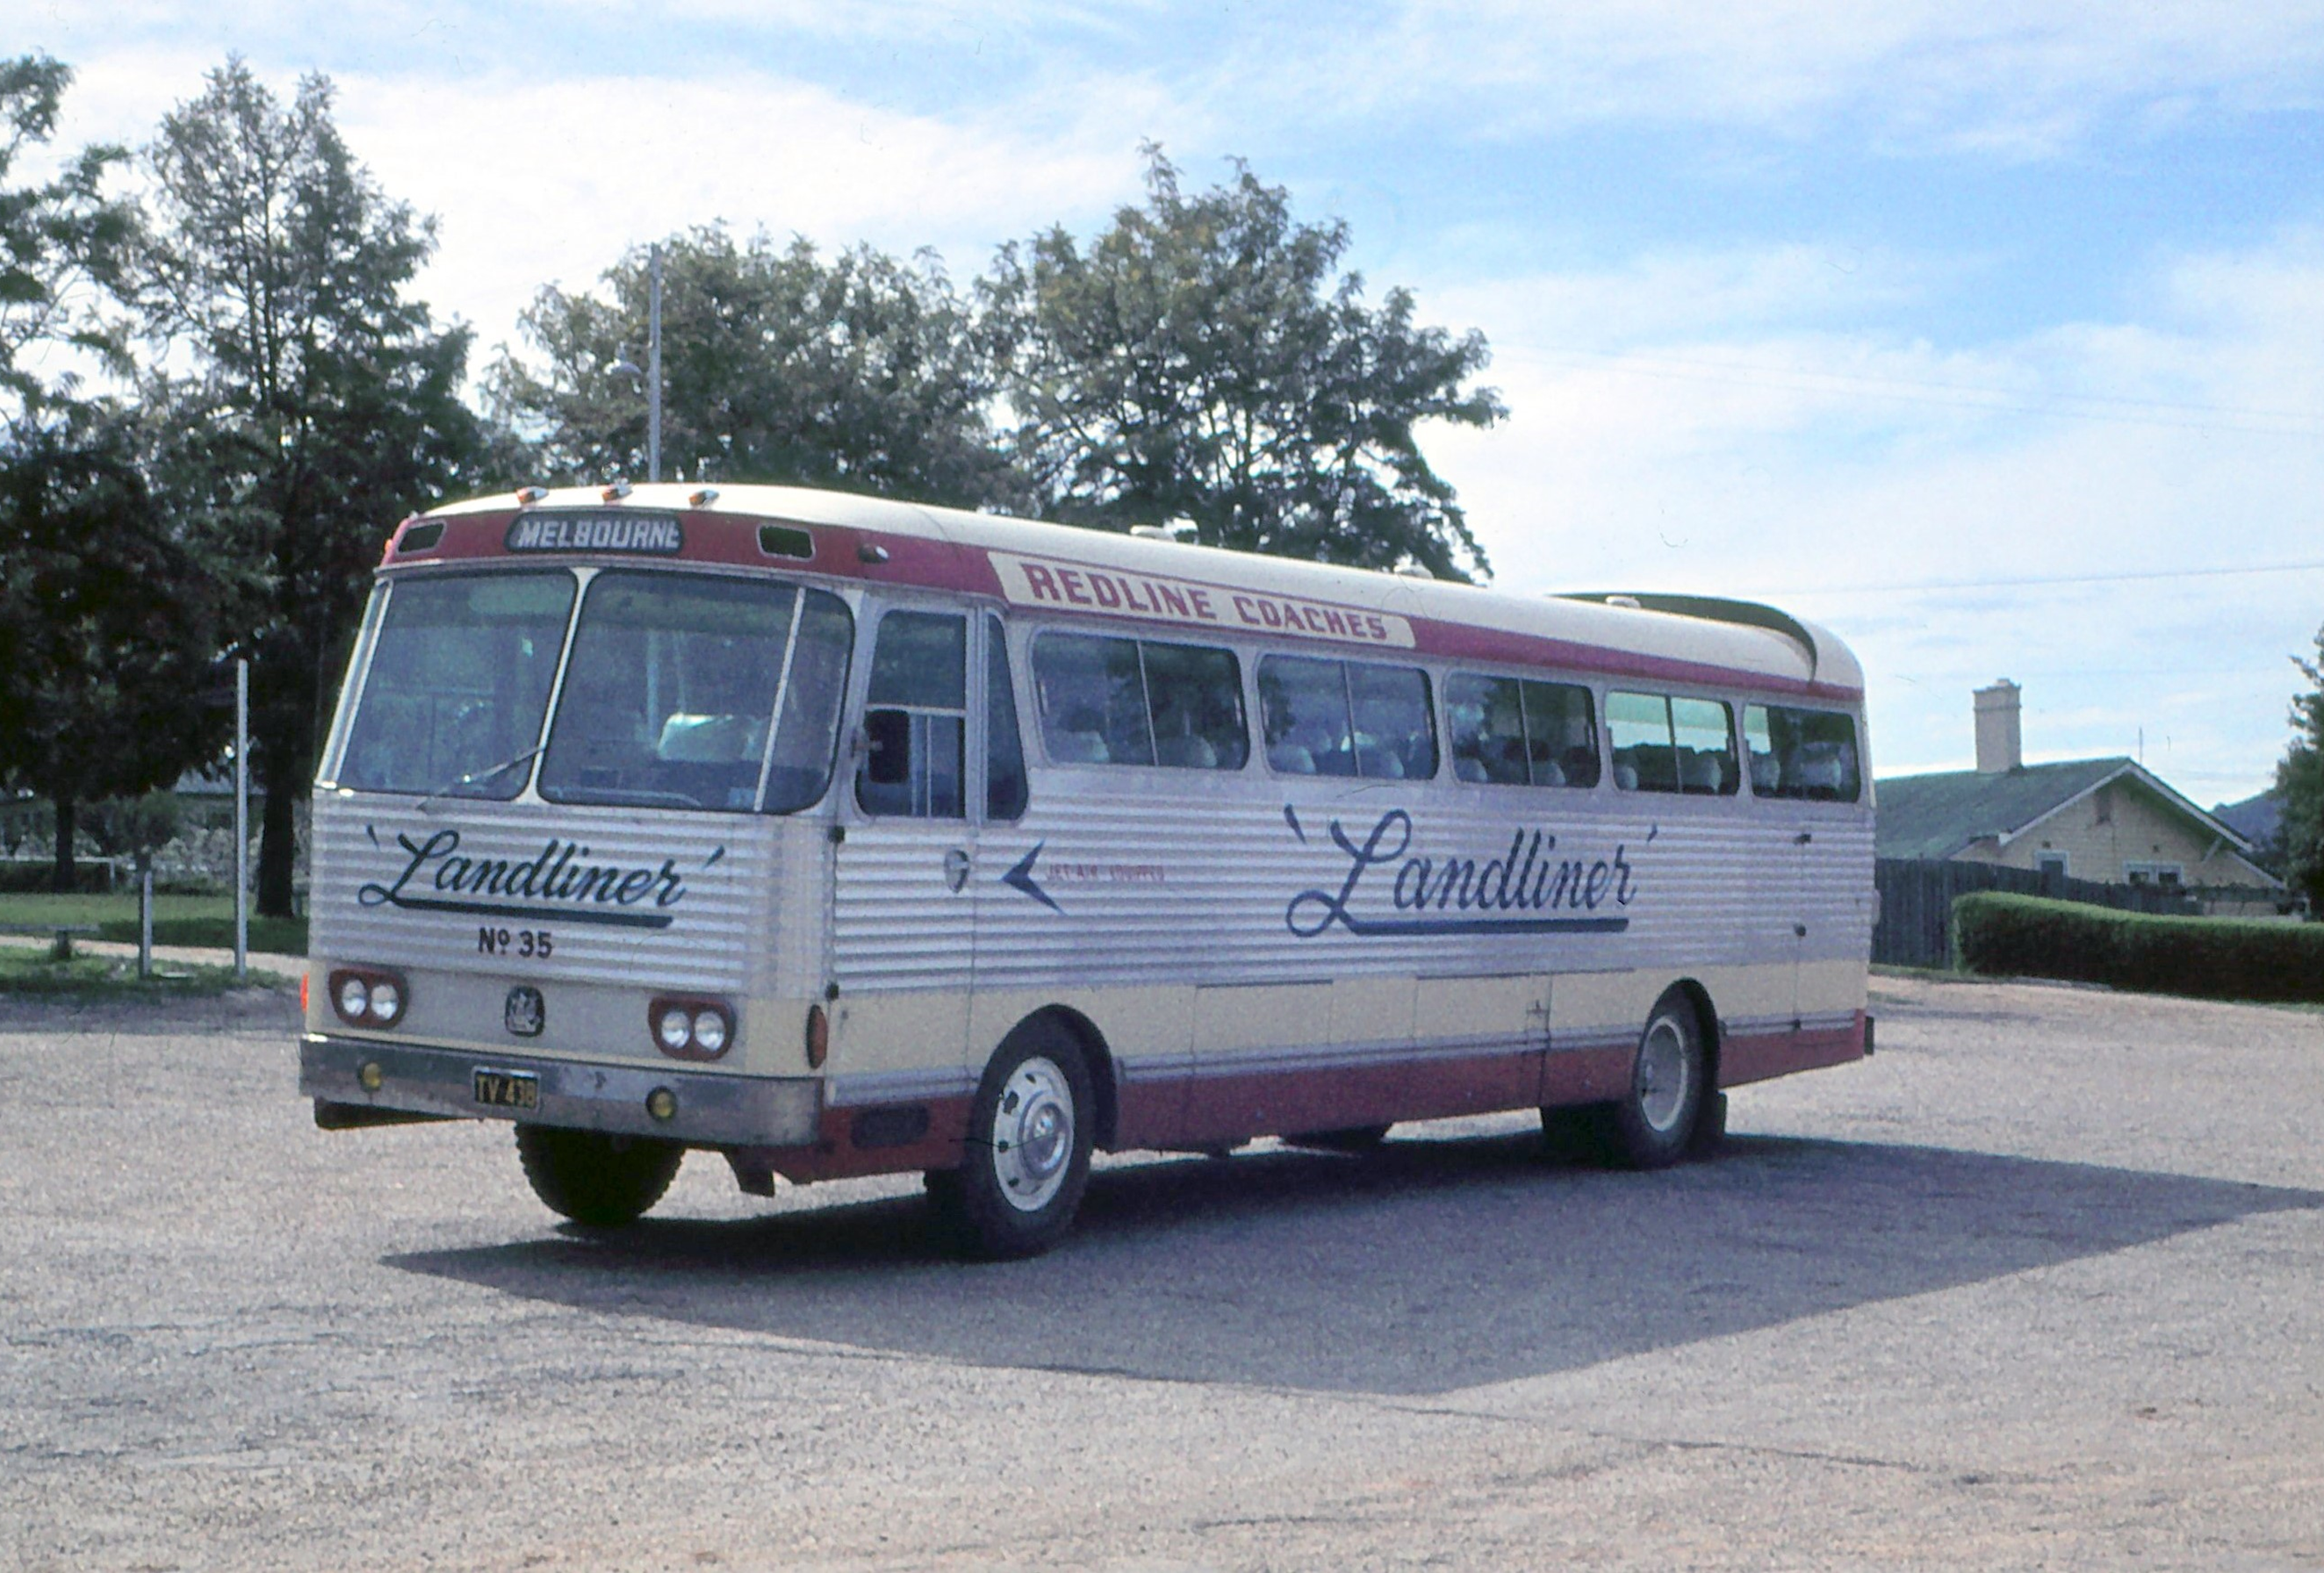 Denning double decker for sale - Another Early 1960s Denning Was Redline Coaches 35 A Rear Engine Denning Bodied Bedford Tv 438 Photographed On Tour At Hume Weir In 1965 Geoff Mann